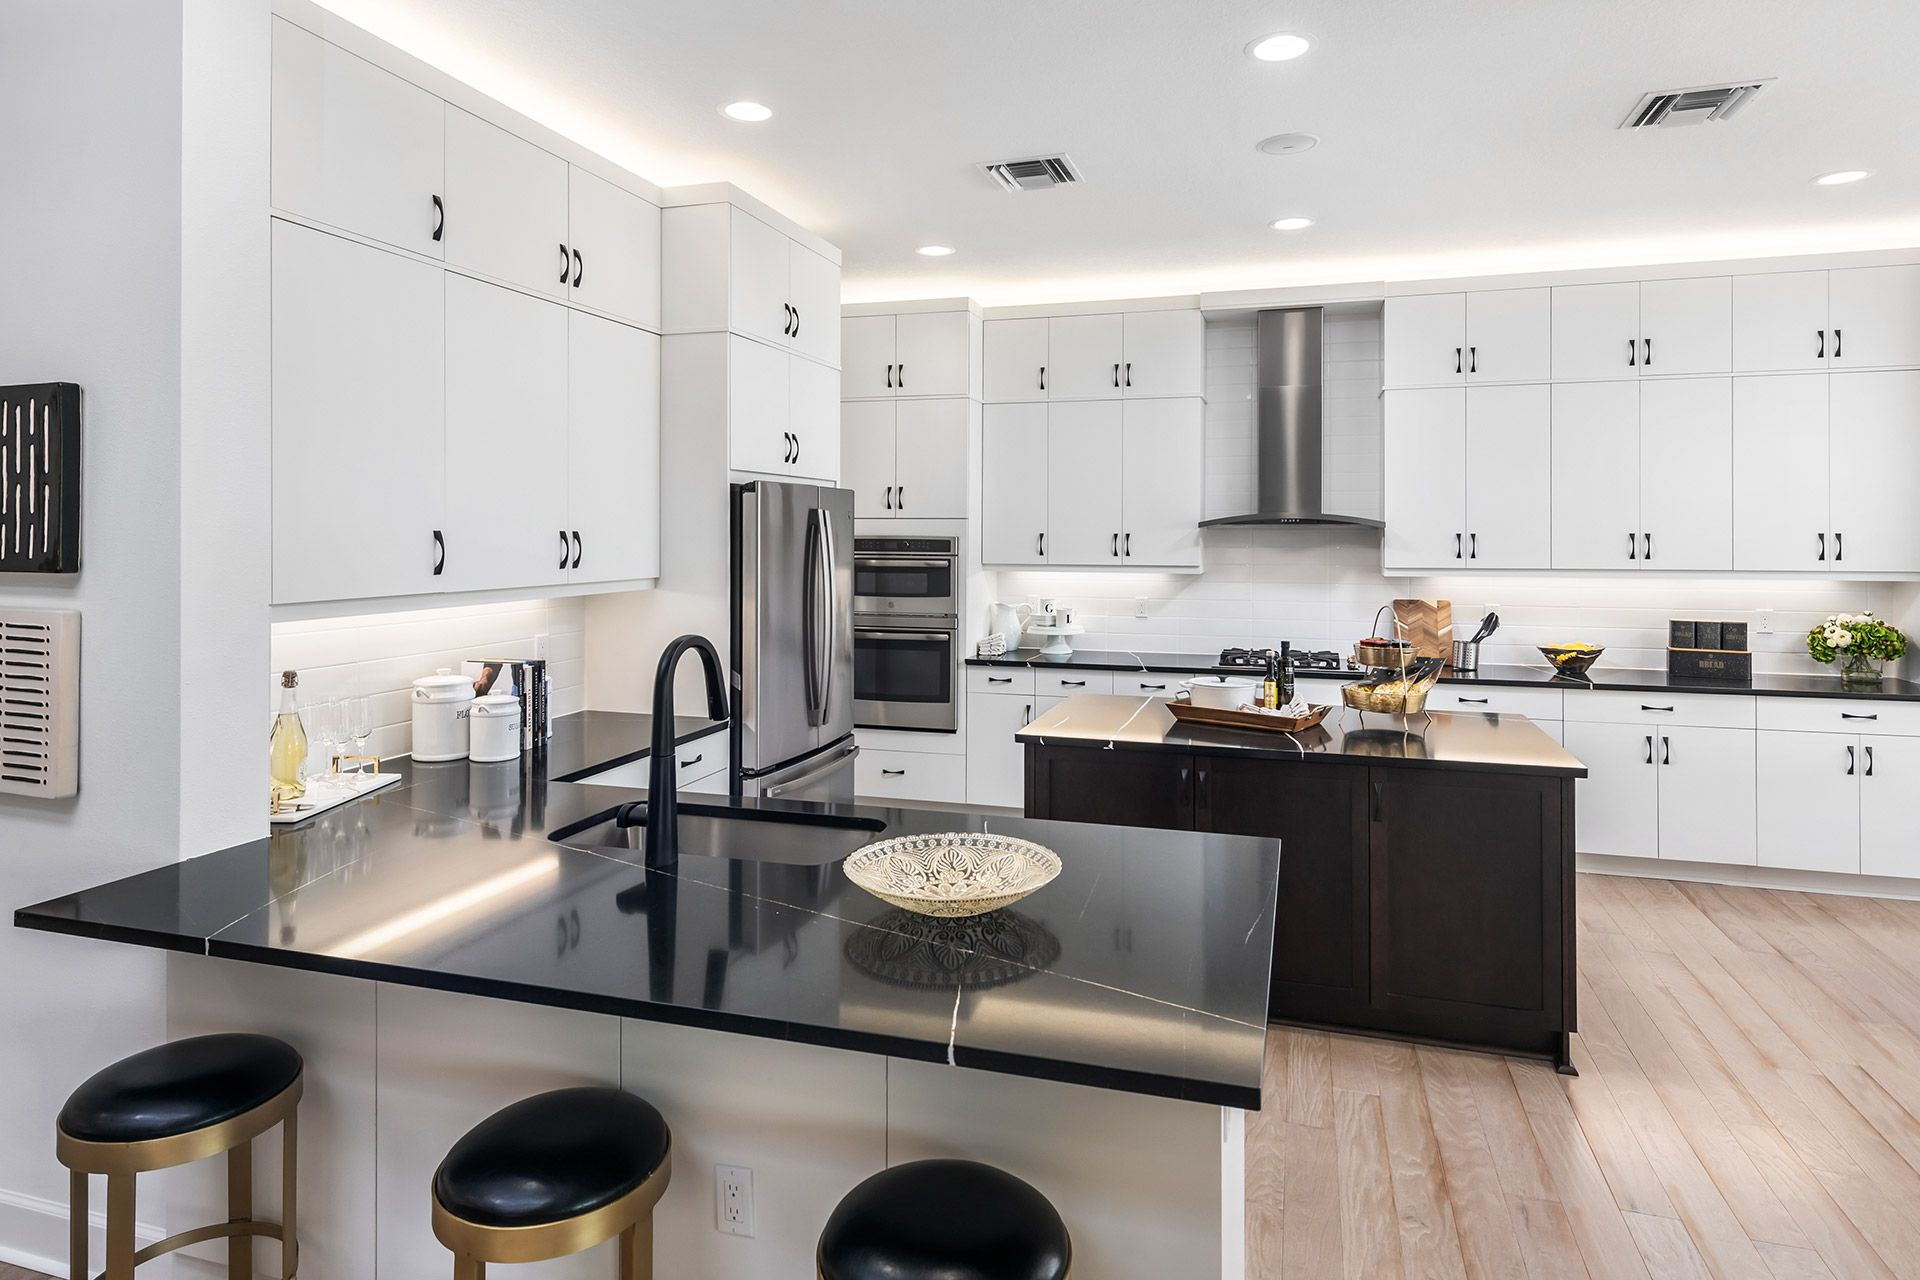 Kitchen featured in the Estero By GL Homes in Naples, FL